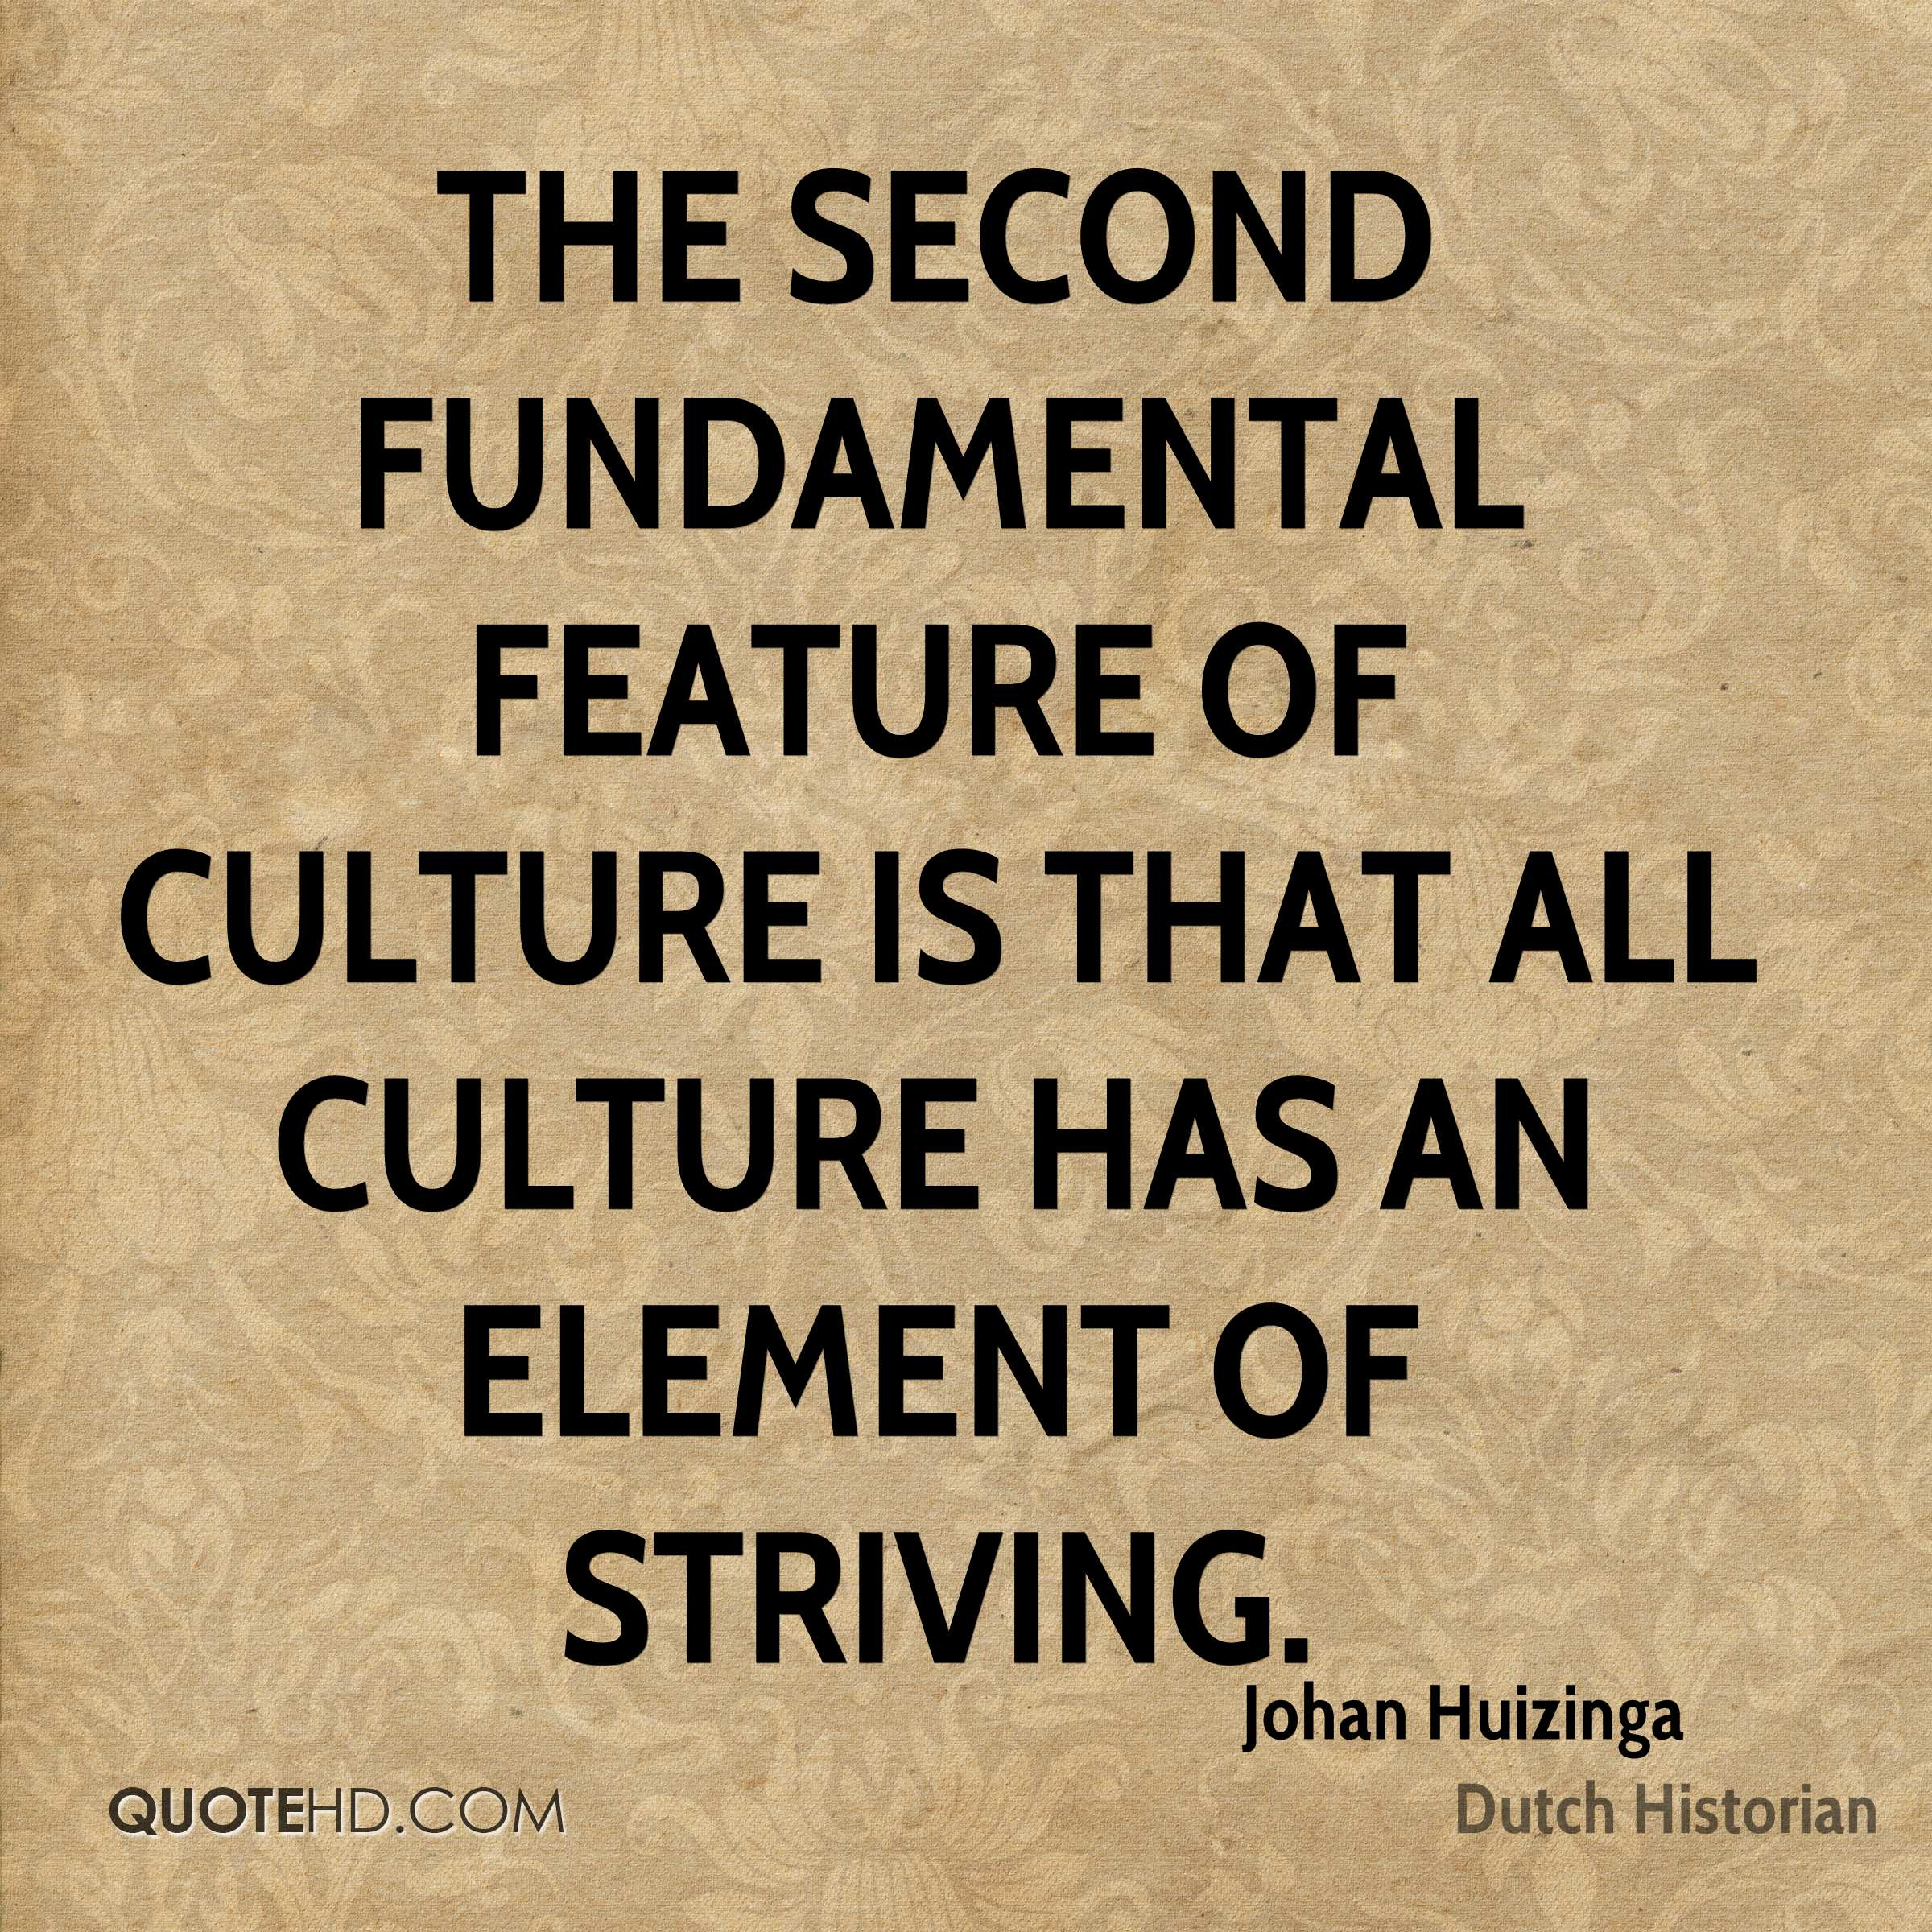 The second fundamental feature of culture is that all culture has an element of striving.